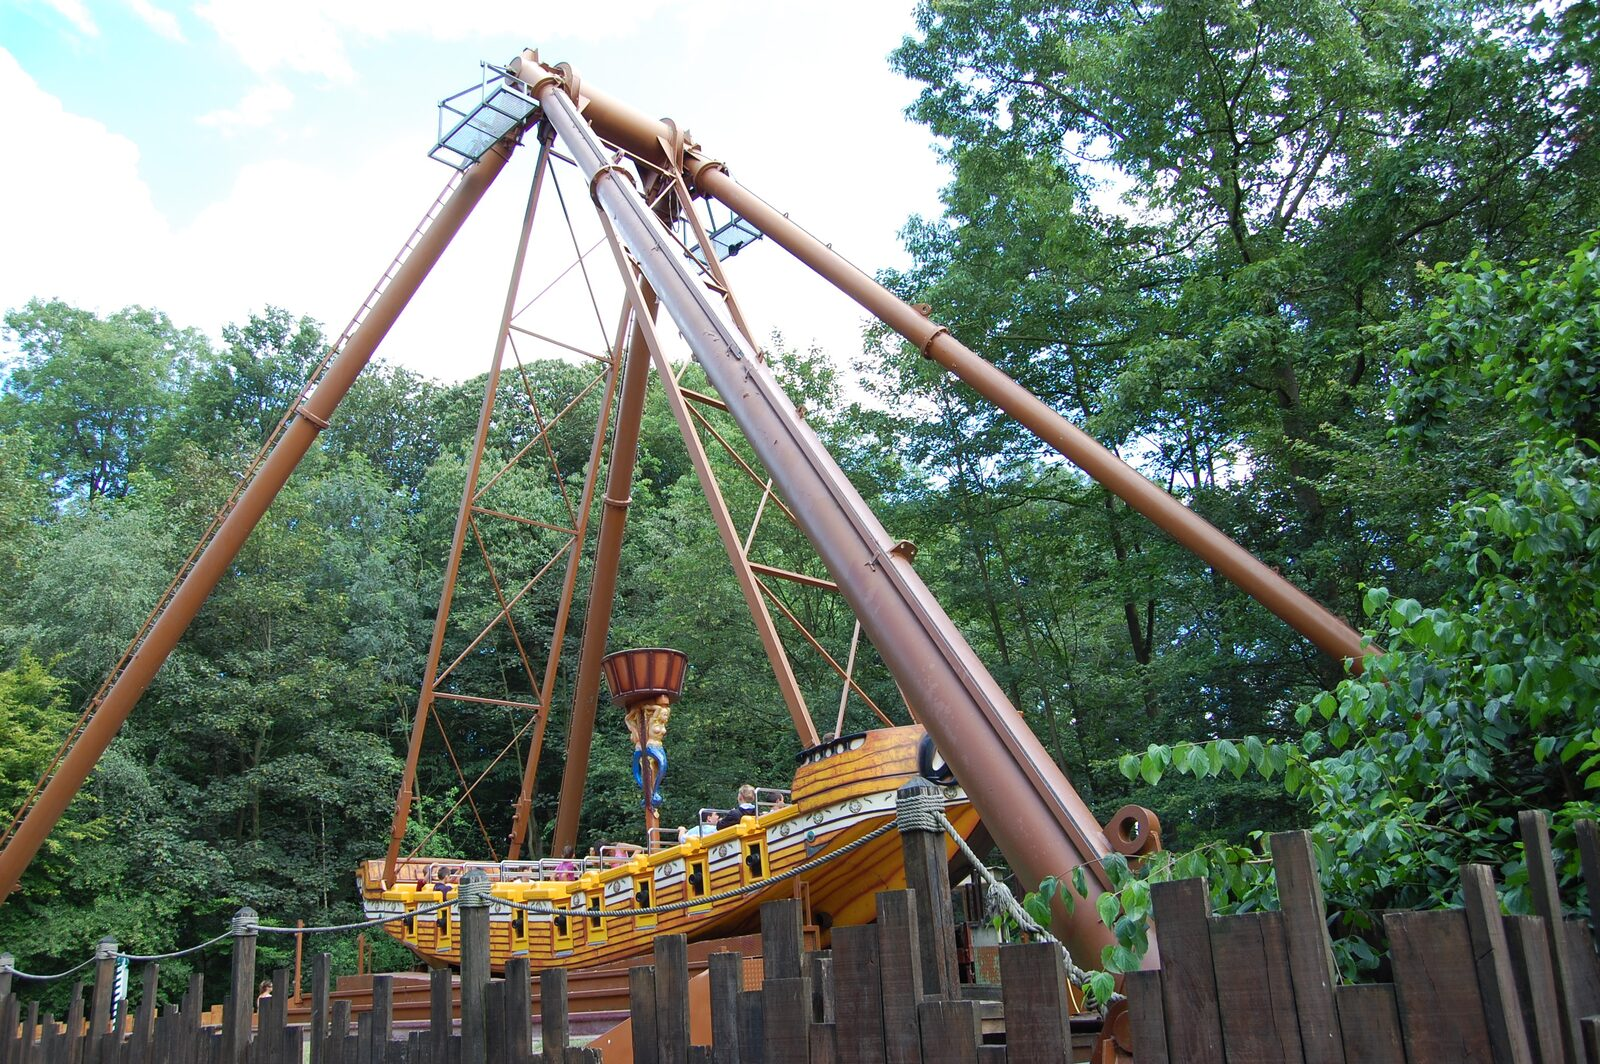 Bellewaerde amusement park